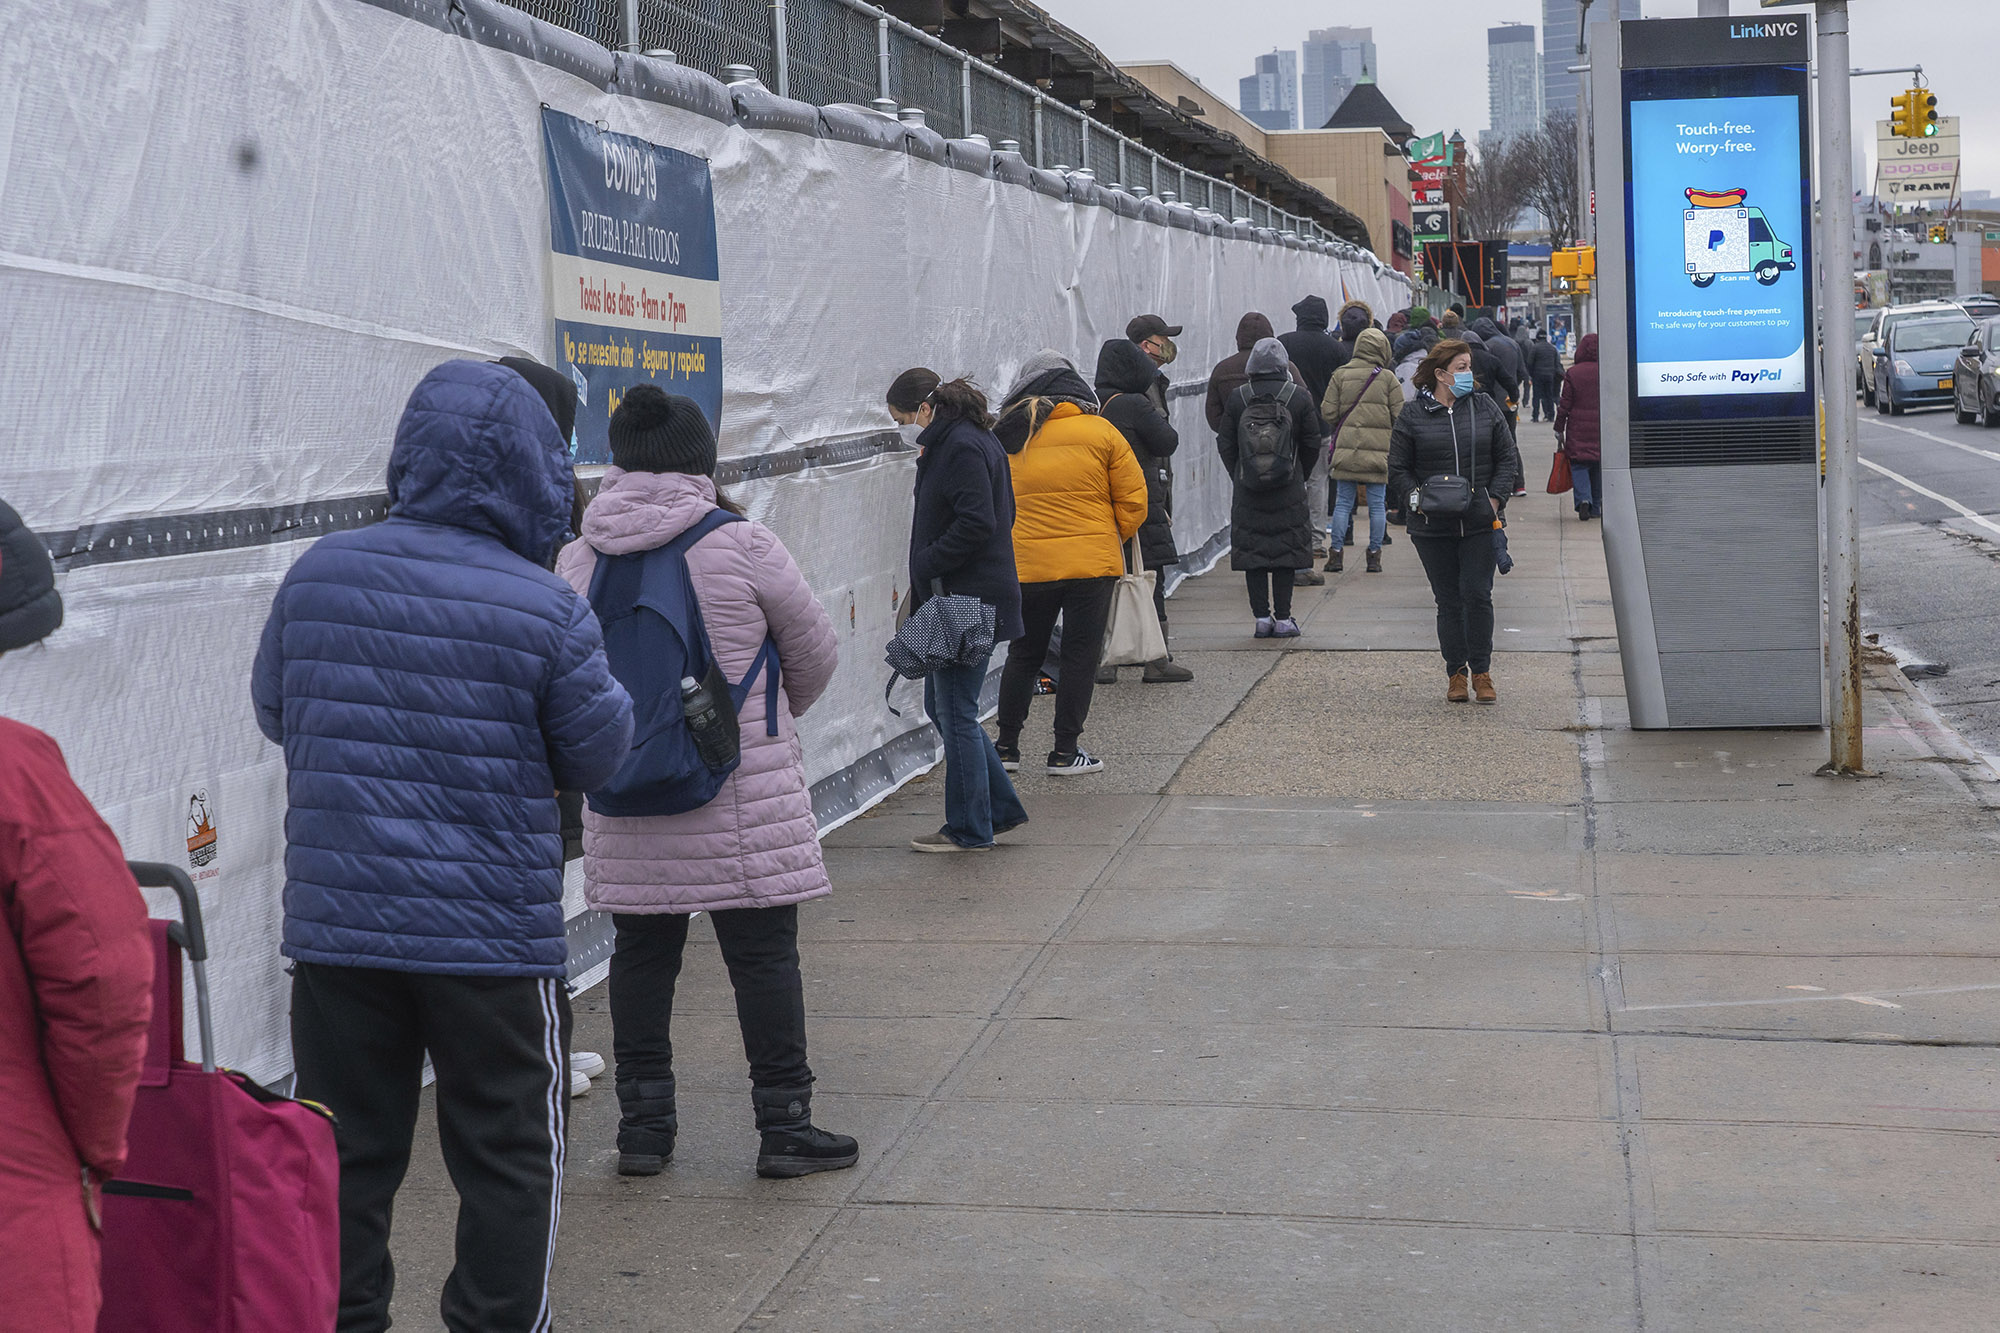 New York City residents wait in a line outside a COVID-19 testing site through NYC Health + Hospitals located in Queens, on Sunday, January 3.